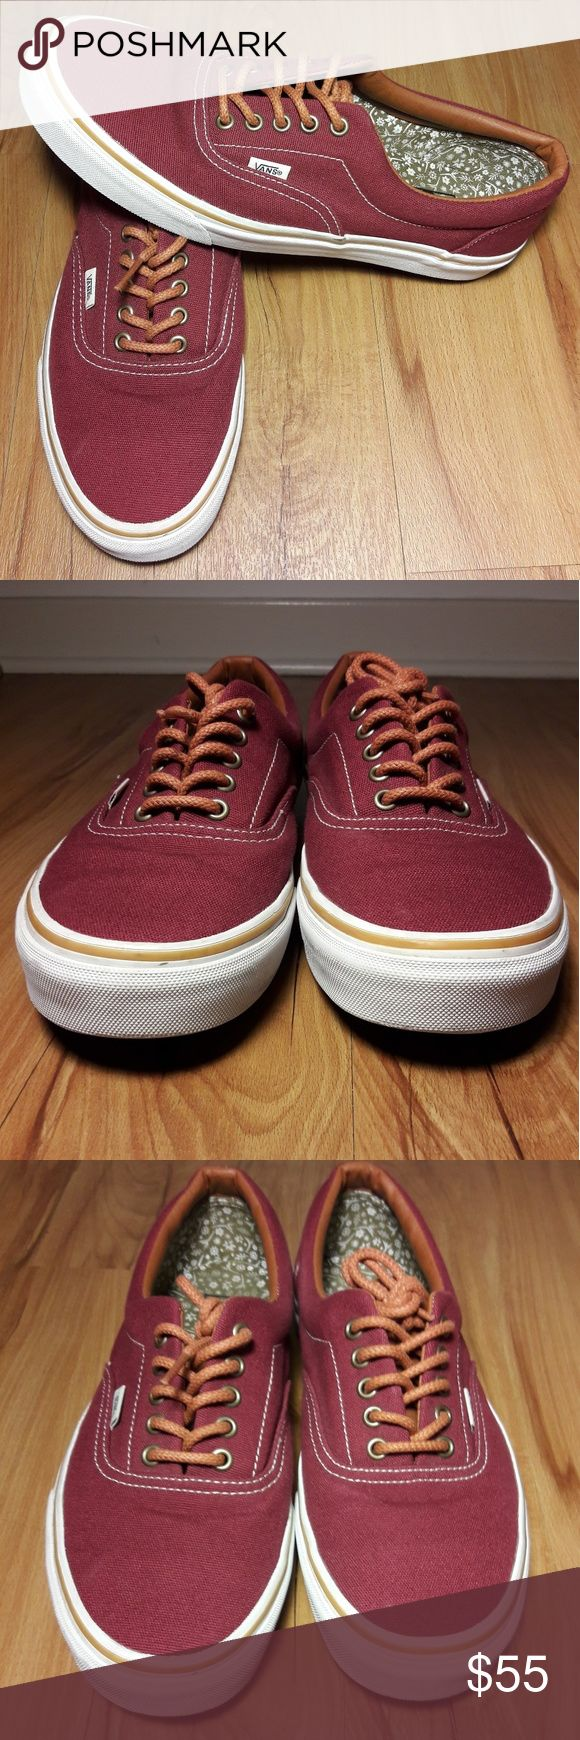 Vans Mens Slip on Tie Shoe Size 10.5 Men's Van's 10.5 Burgundy Shoes Classic Canvas Slip On & Tie Skateboarding   Pre-owned in Excellent condition.   Some minor scuffs from normal wear. Please view images.  Thank you for Looking & Sharing Happy Poshing Vans Shoes Loafers & Slip-Ons